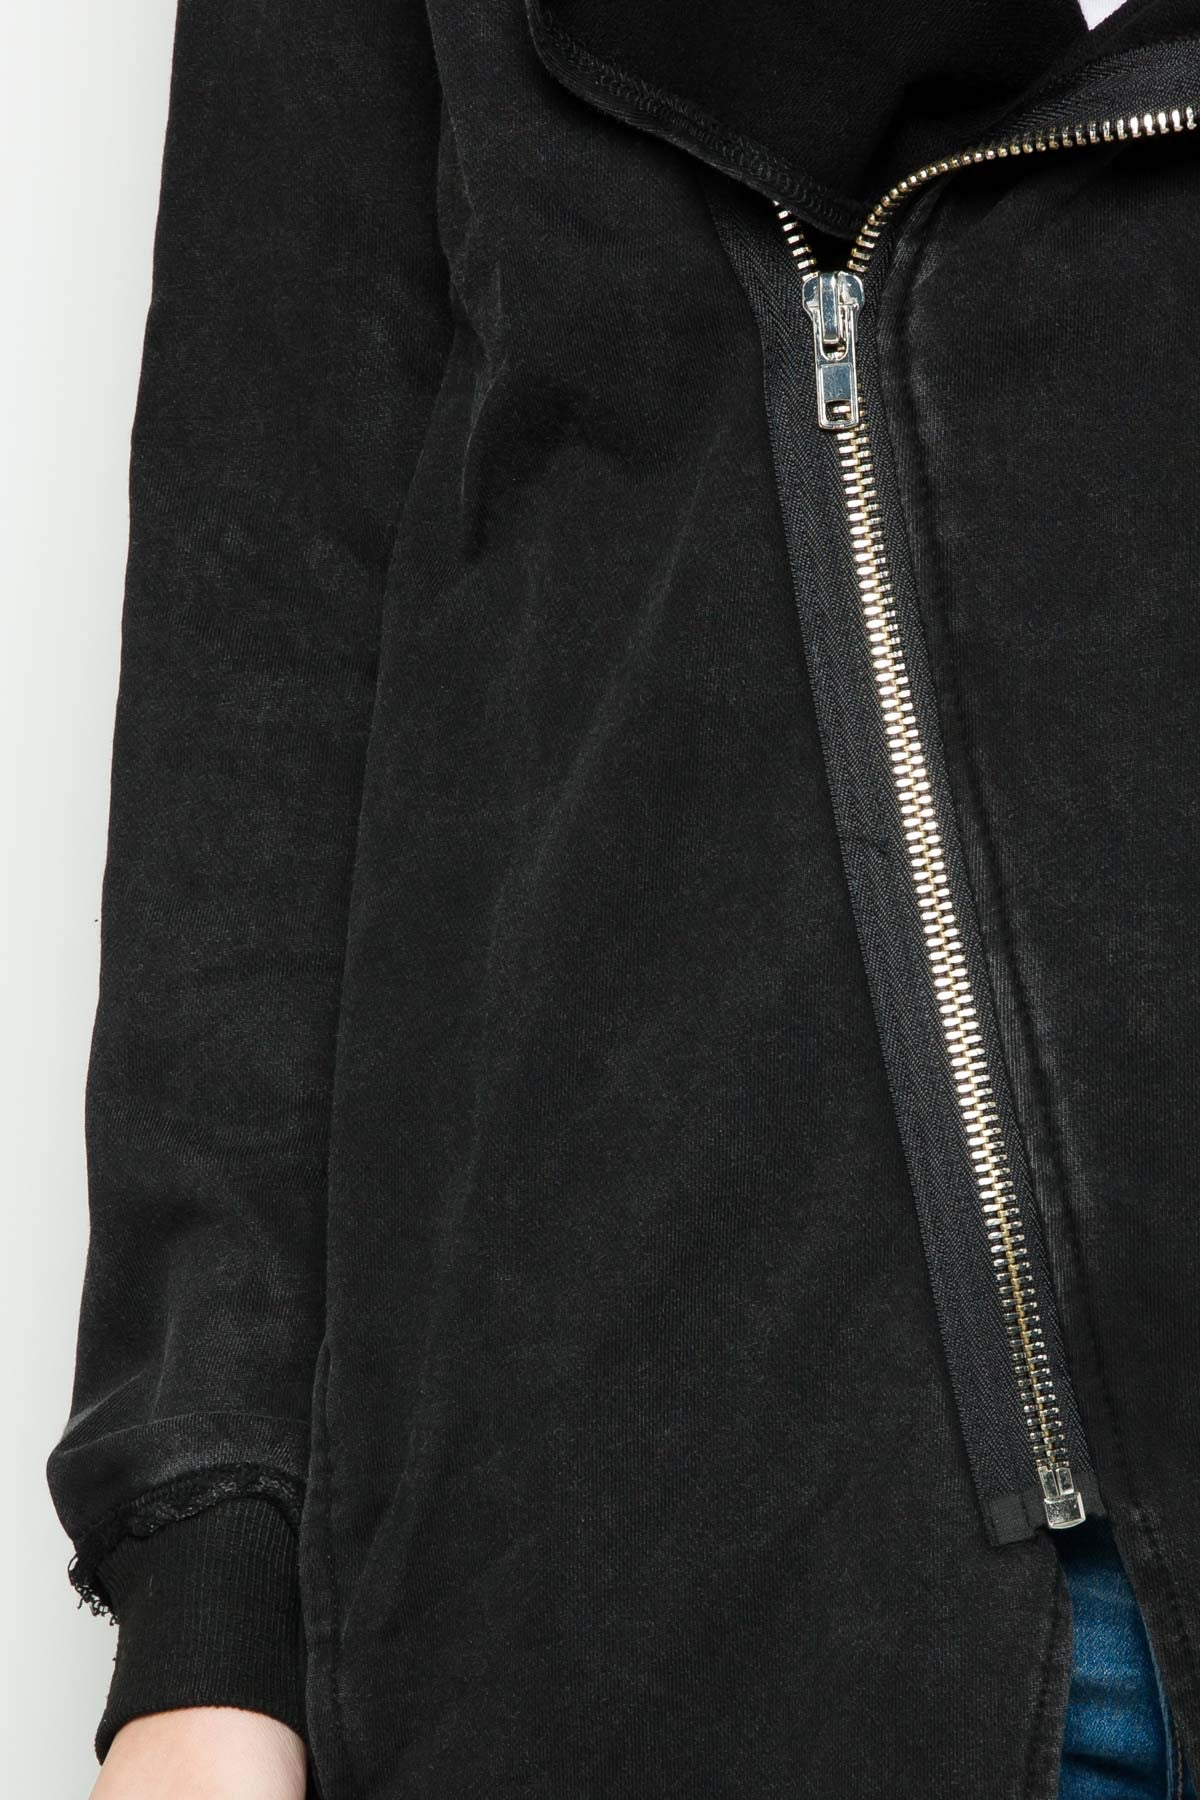 Hooded Asymmetric Zip Up Acid Wash Jacket in Black - Jacket - My Yuccie - 6